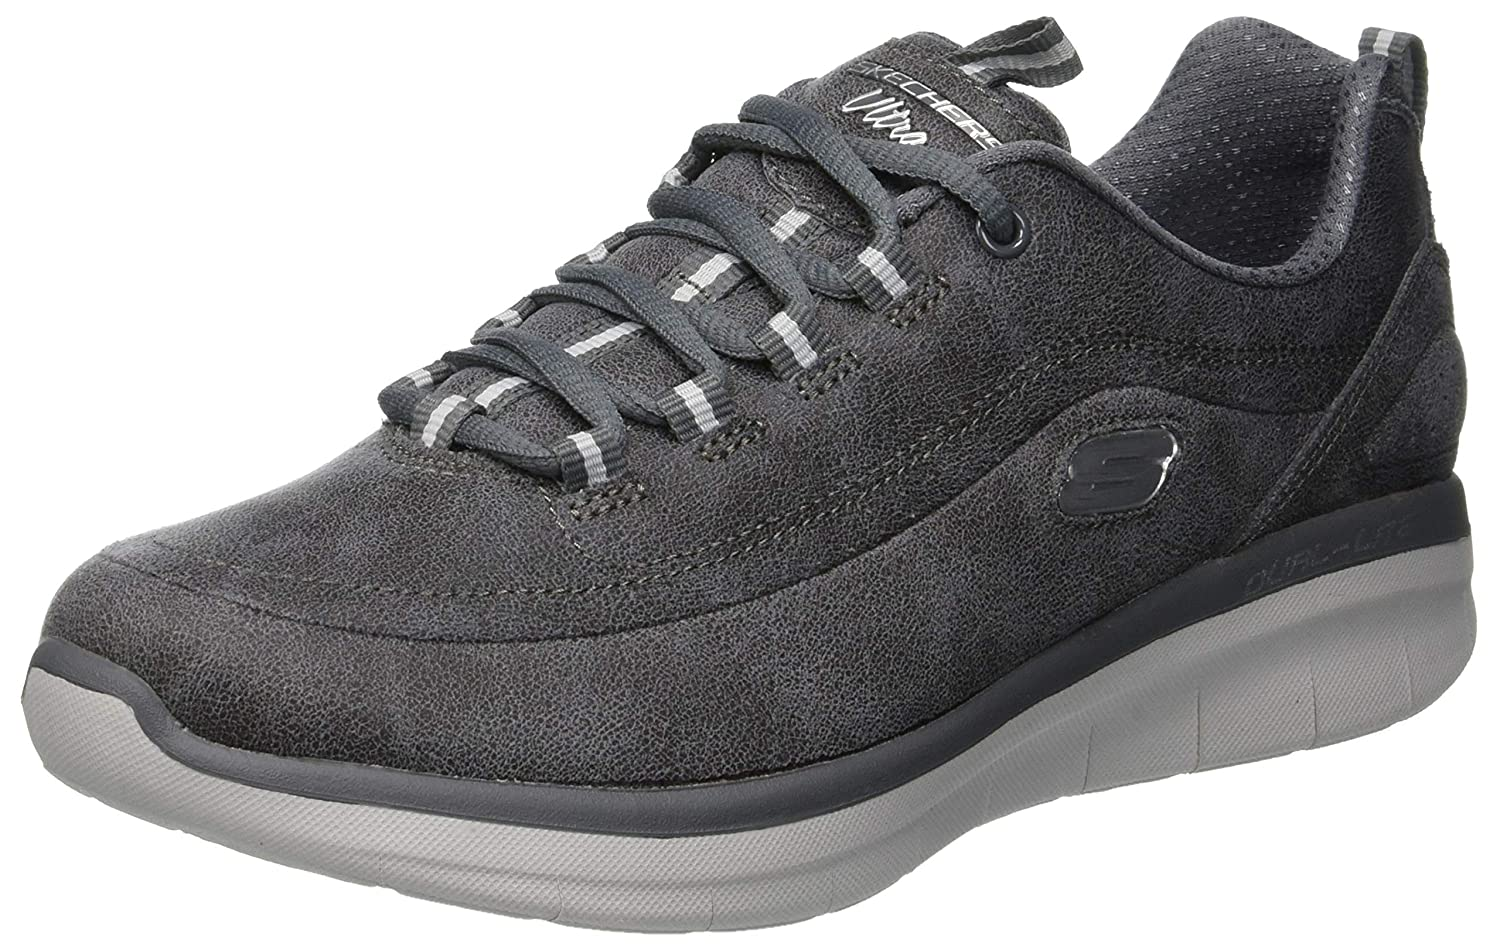 Skechers Synergy Synergy 2.0, Baskets Femme Femme Gris (Charcoal Skechers Charcoal) 85da01c - reprogrammed.space